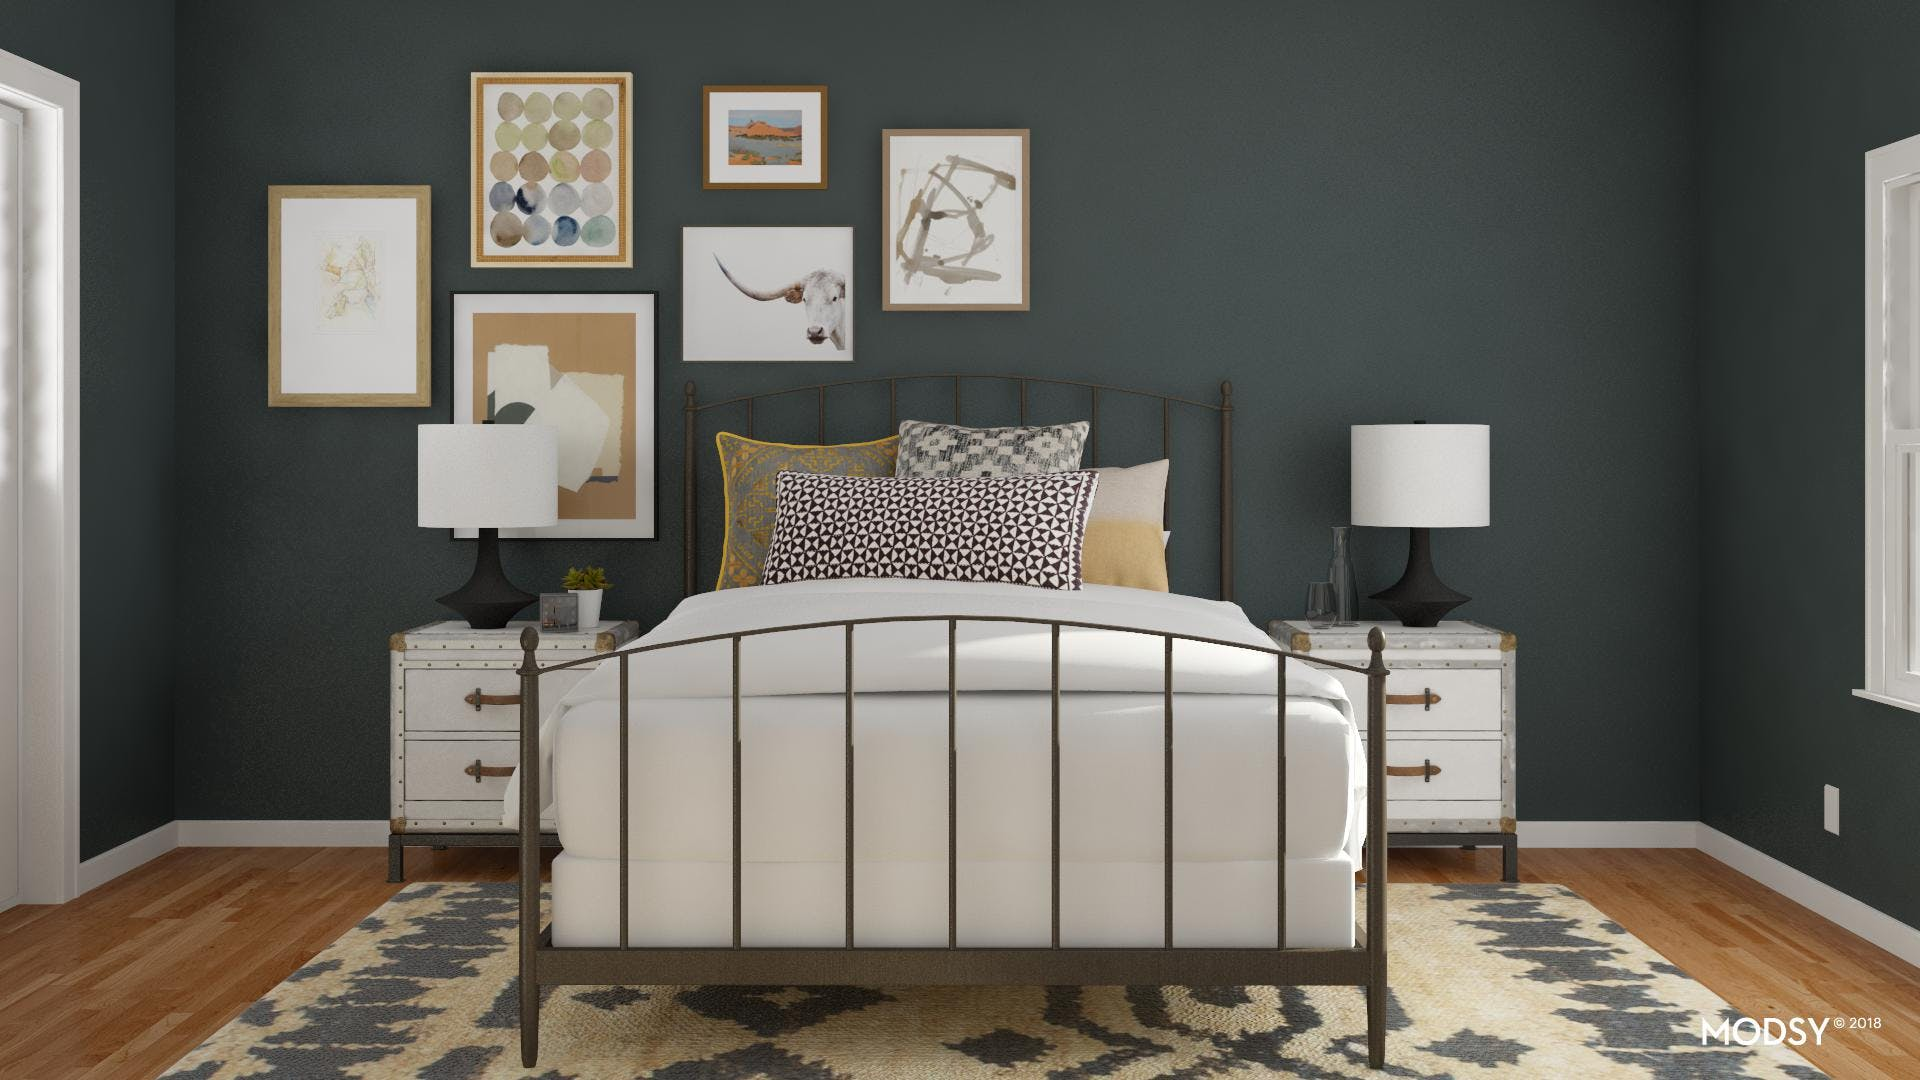 How To Start A Gallery Wall In The Bedroom